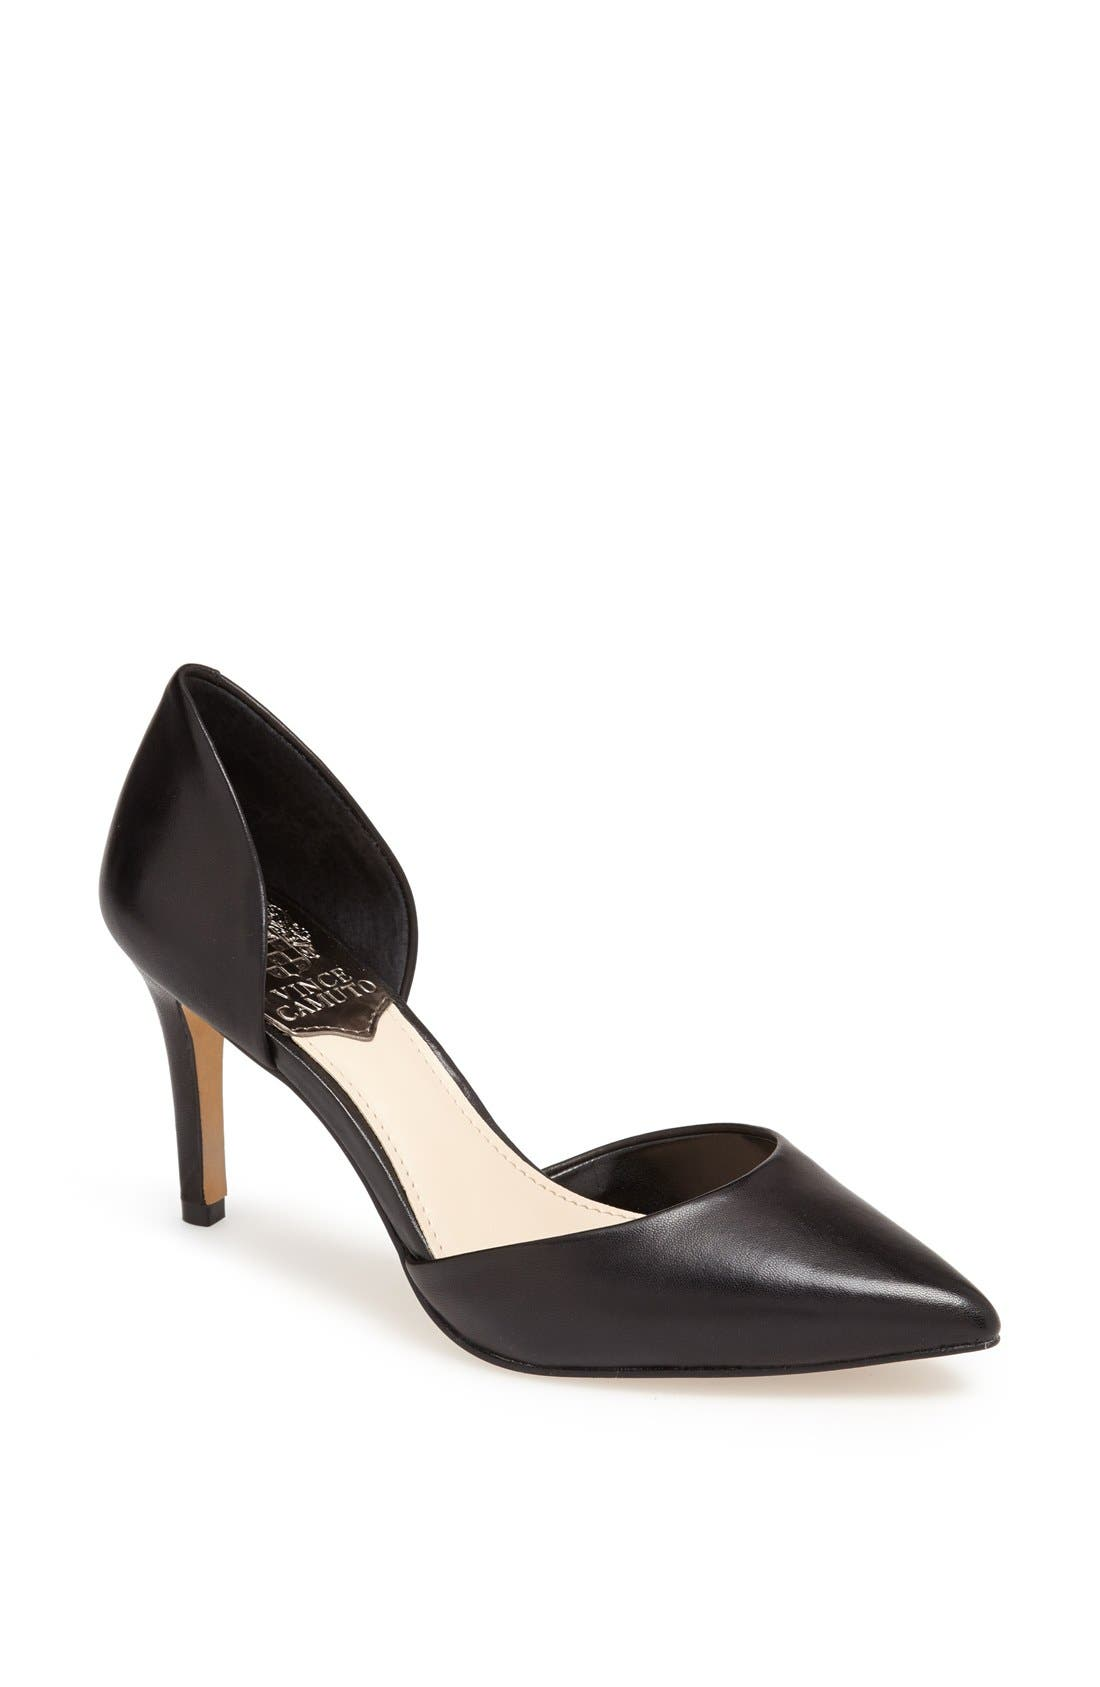 'Raccia' Pointy Toe d'Orsay Pump,                             Main thumbnail 1, color,                             001